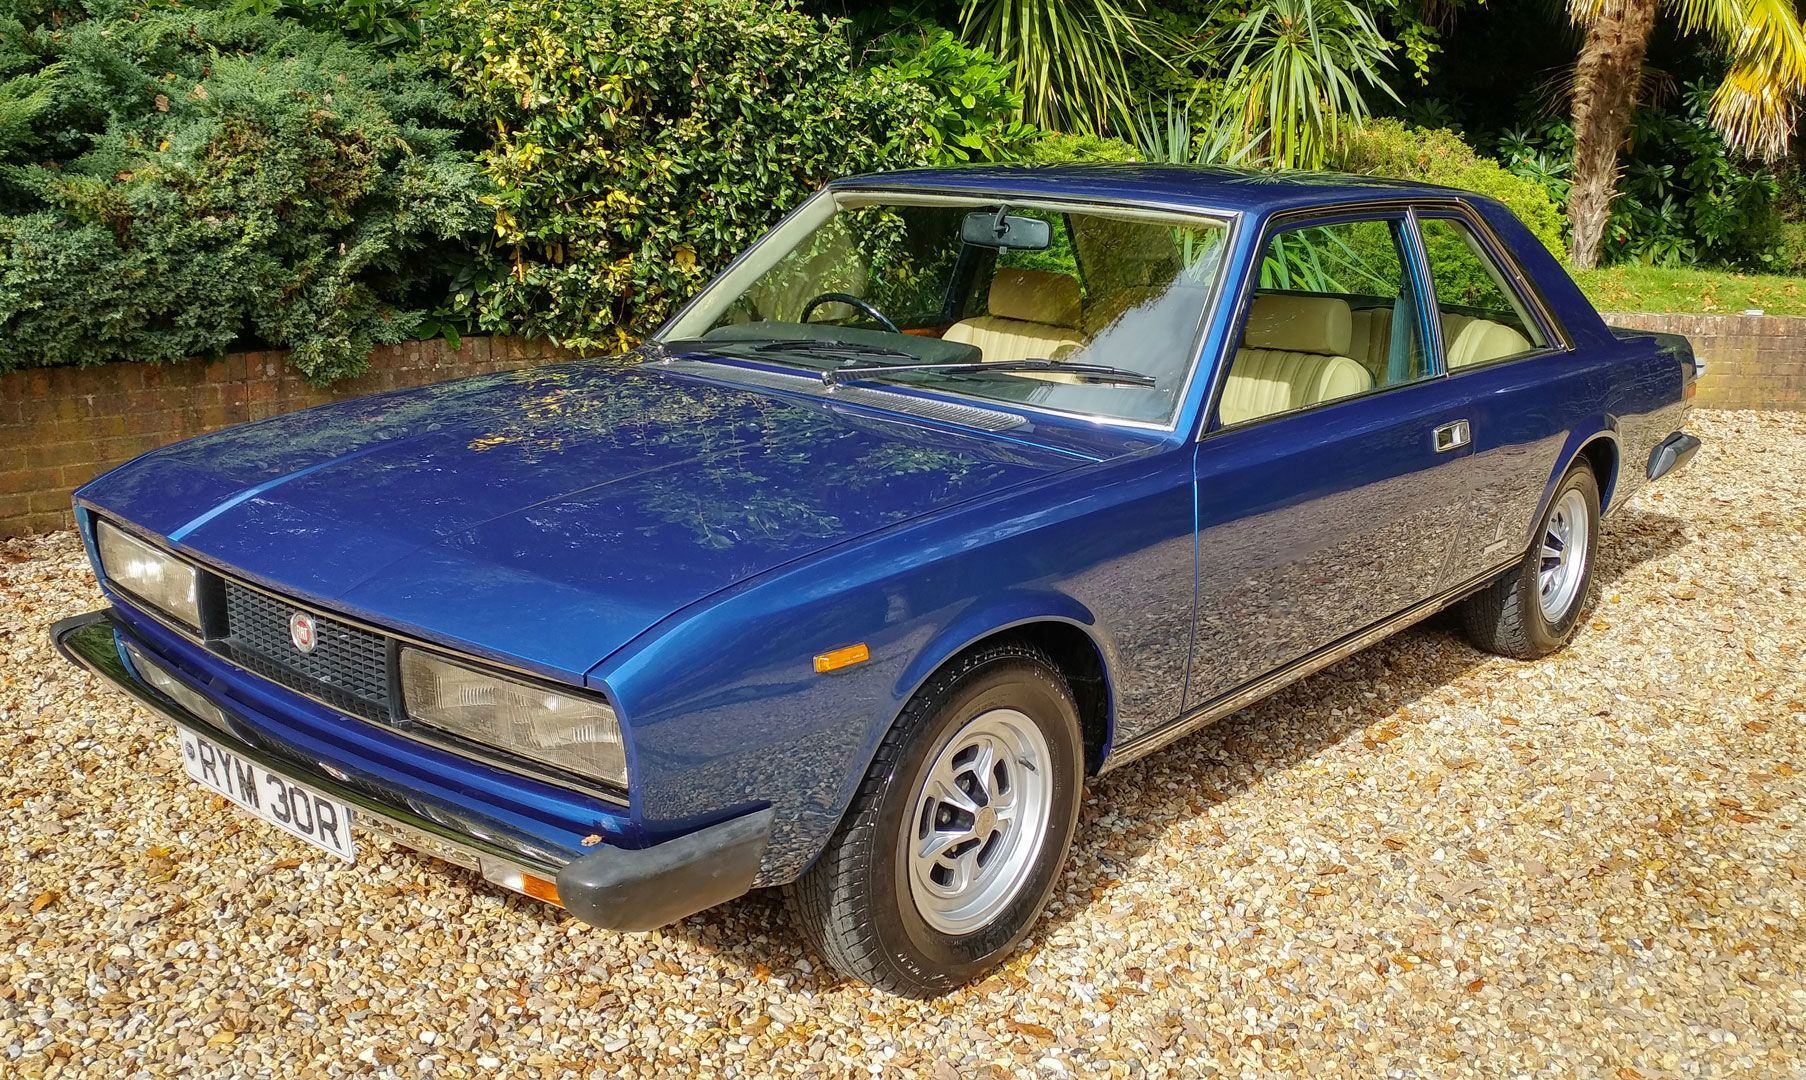 1977 Fiat 130 Coupe Fiat Coupe Leather Interior